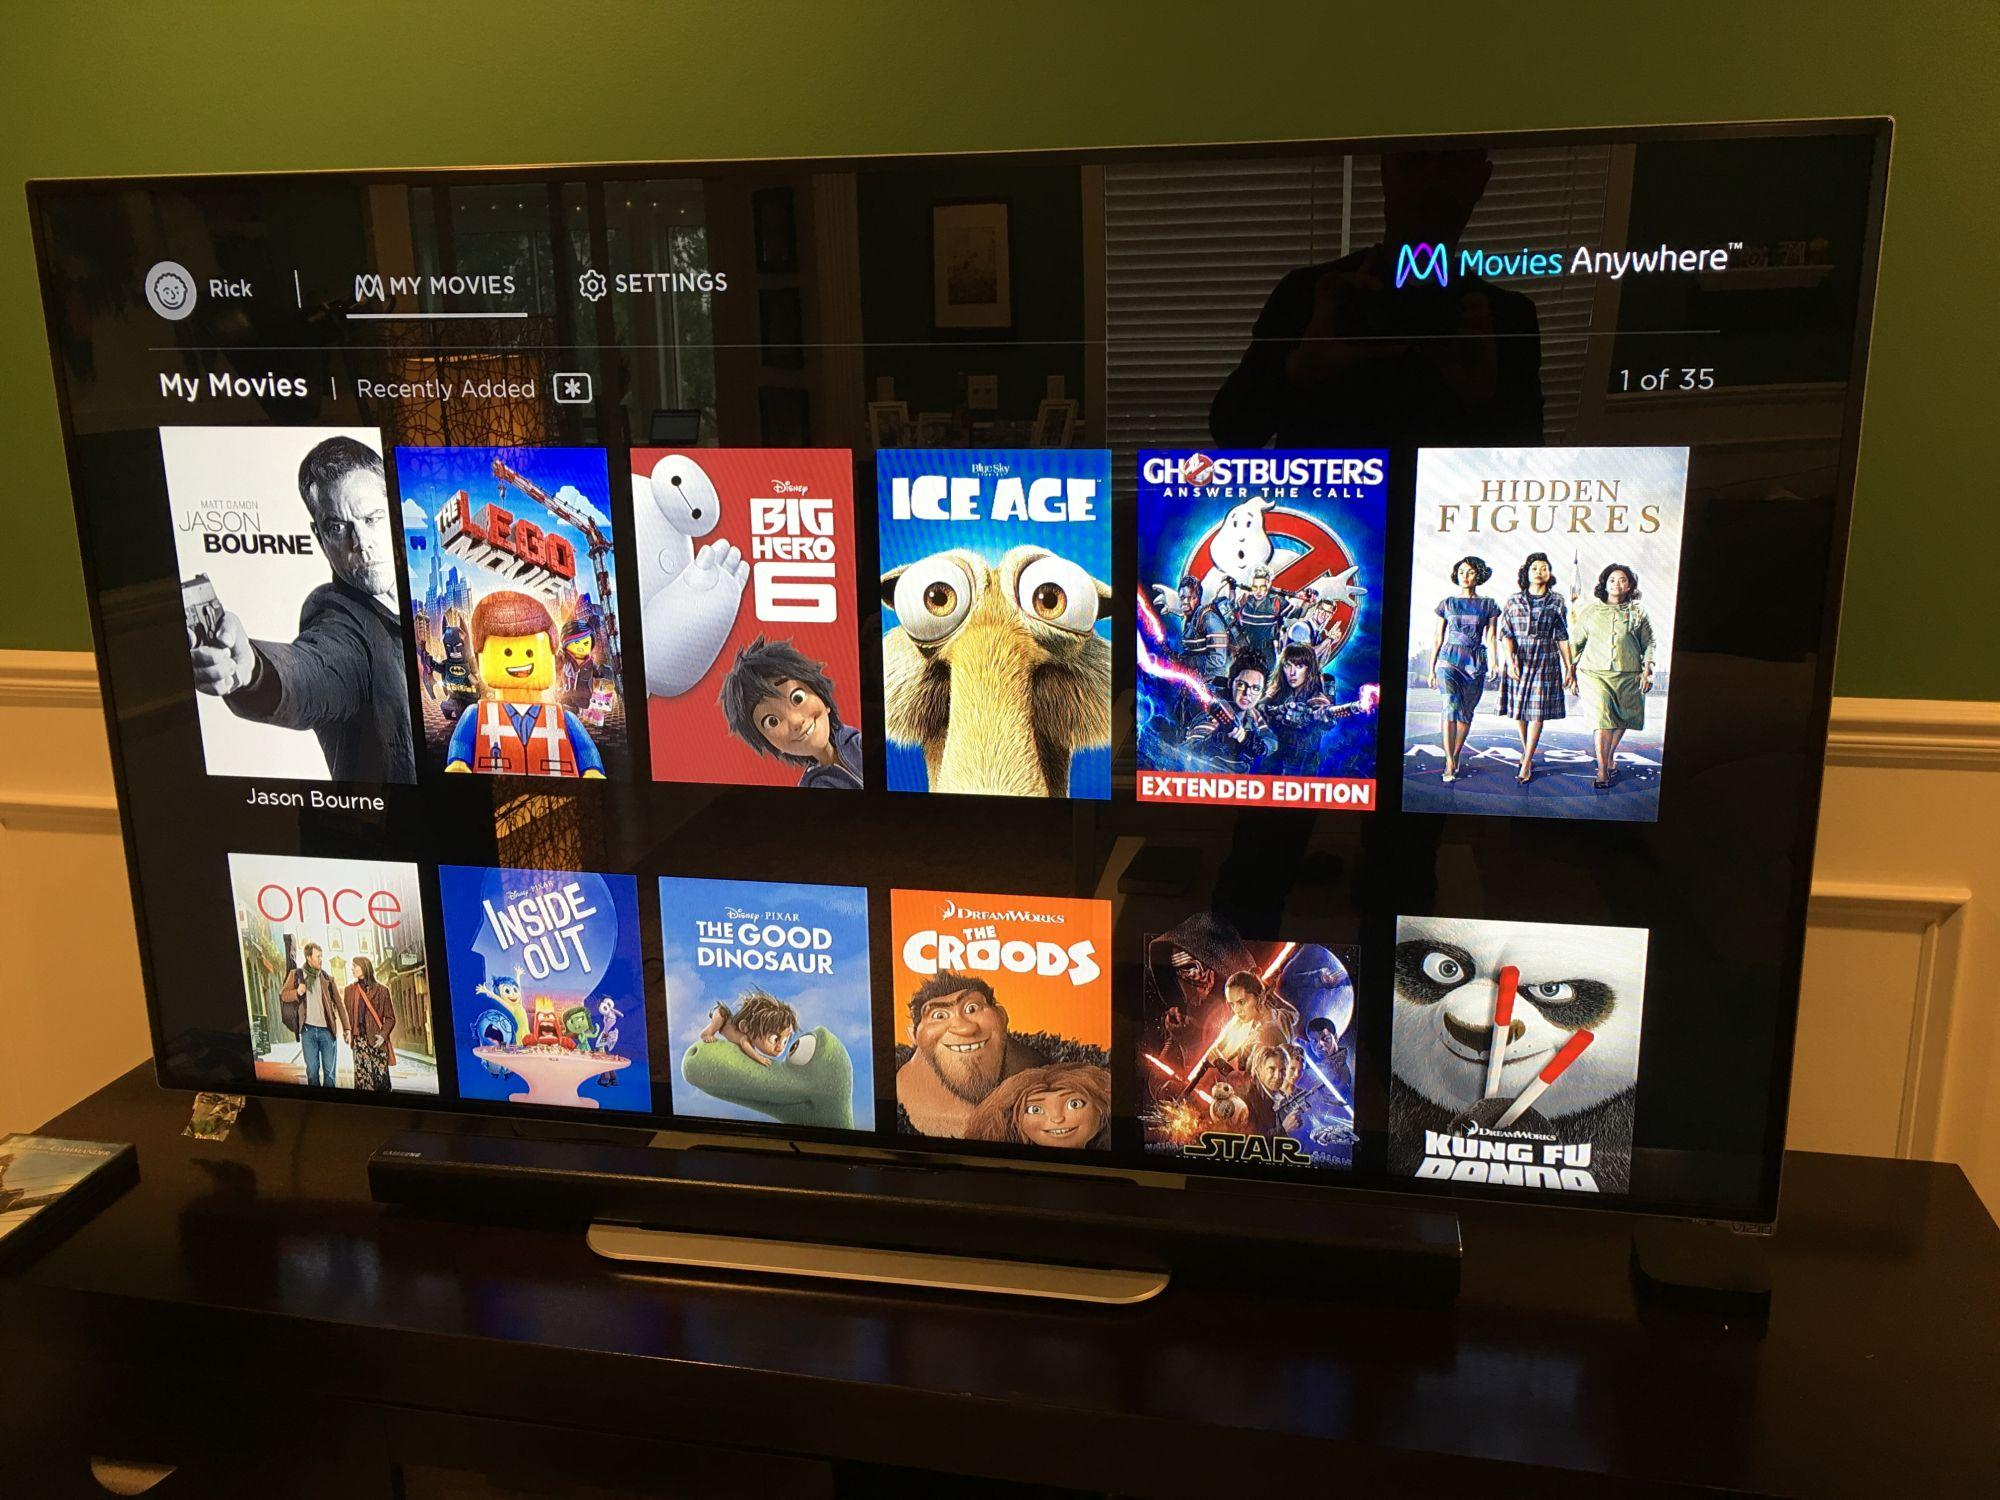 movies-anywhere-on-roku